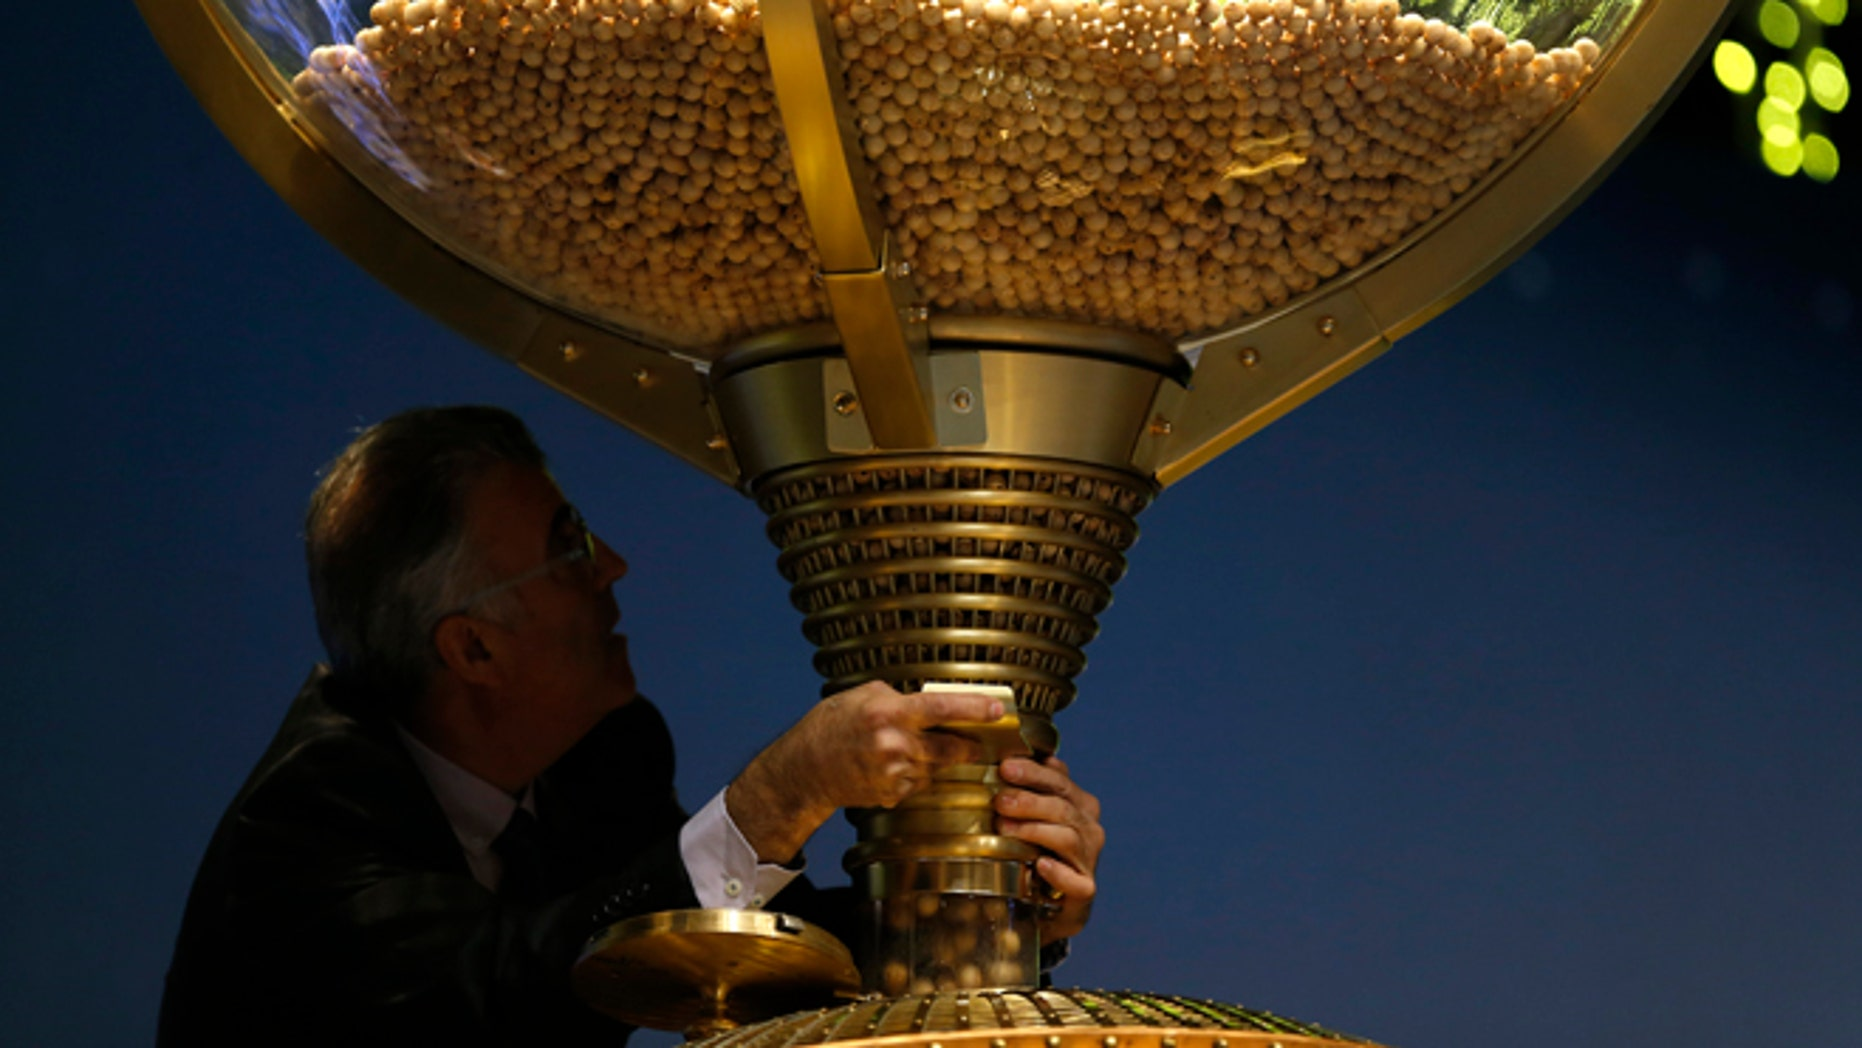 """A worker opens a trap-door in a giant drum to let the balls bearing ticket numbers fall into a lower compartment before the start of Spain's Christmas lottery, in Madrid, Tuesday, Dec. 22, 2015. Celebrations were guaranteed Tuesday in the southern beach town of Roquetas de Mar, southern east Spain, where tickets bearing the top prize number of 79140 in Spain's Christmas lottery, known as """"El Gordo"""" (The Fat One) were sold. The number appeared on 1,600 tickets, known as decimos (tenths) with each holder winning 400,000 euros ($434,800). The tickets are usually sold in many different lottery sales points making it virtually impossible to win the entire 640 million euros assigned to the top prize number. (AP Photo/Francisco Seco)"""